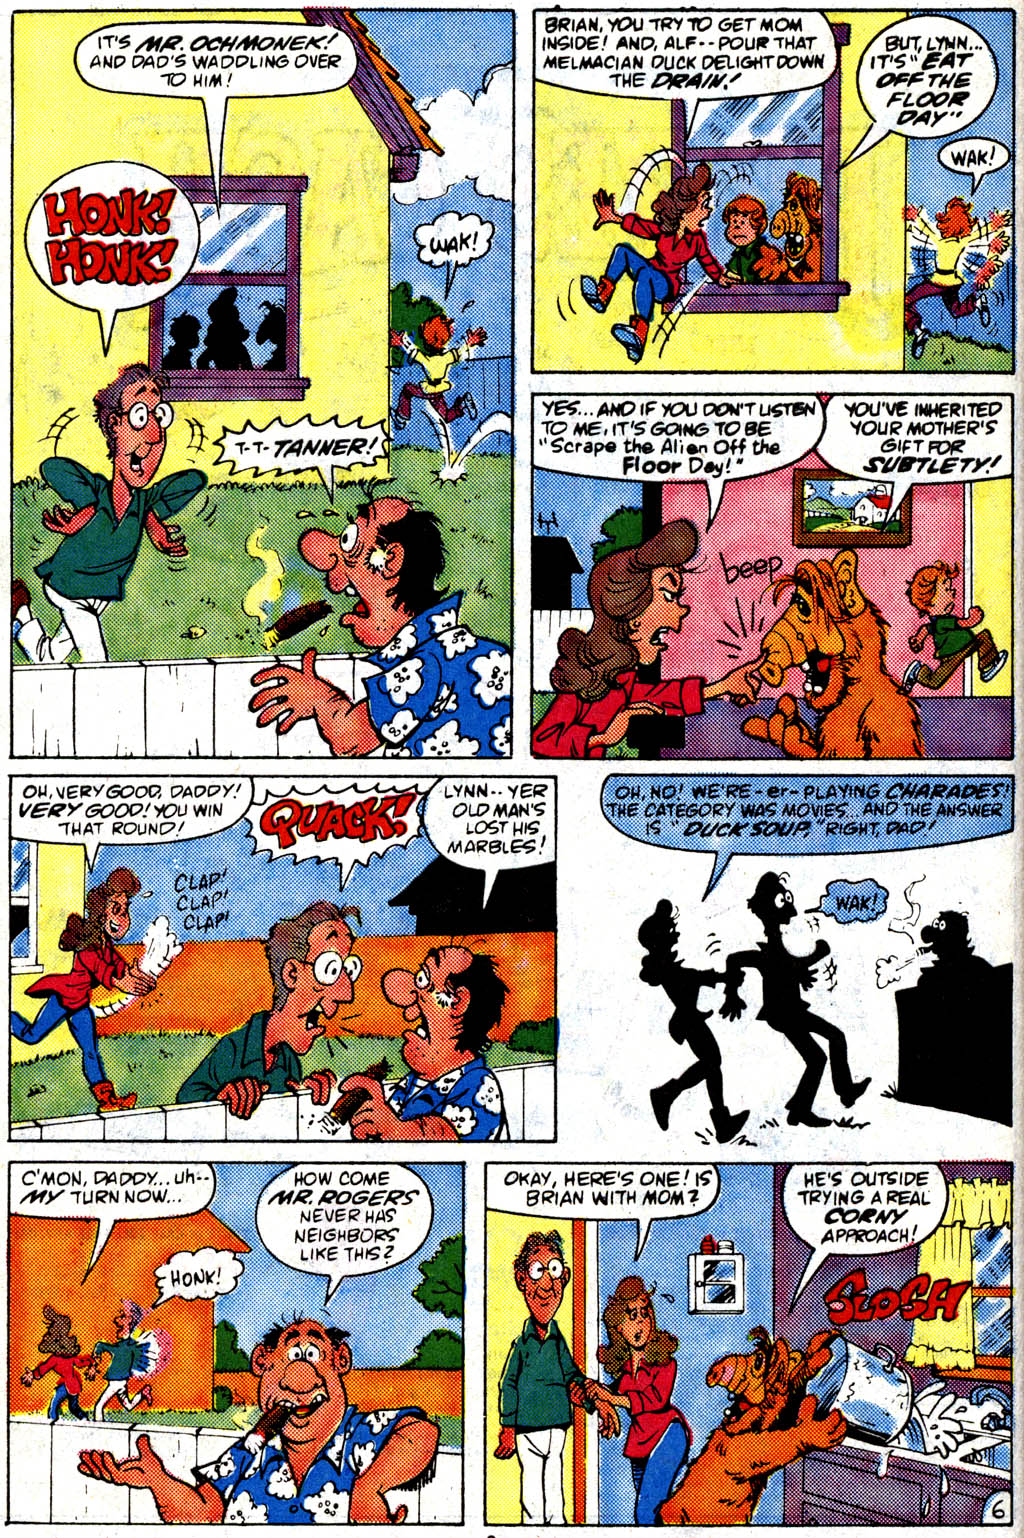 Read online ALF comic -  Issue #9 - 7